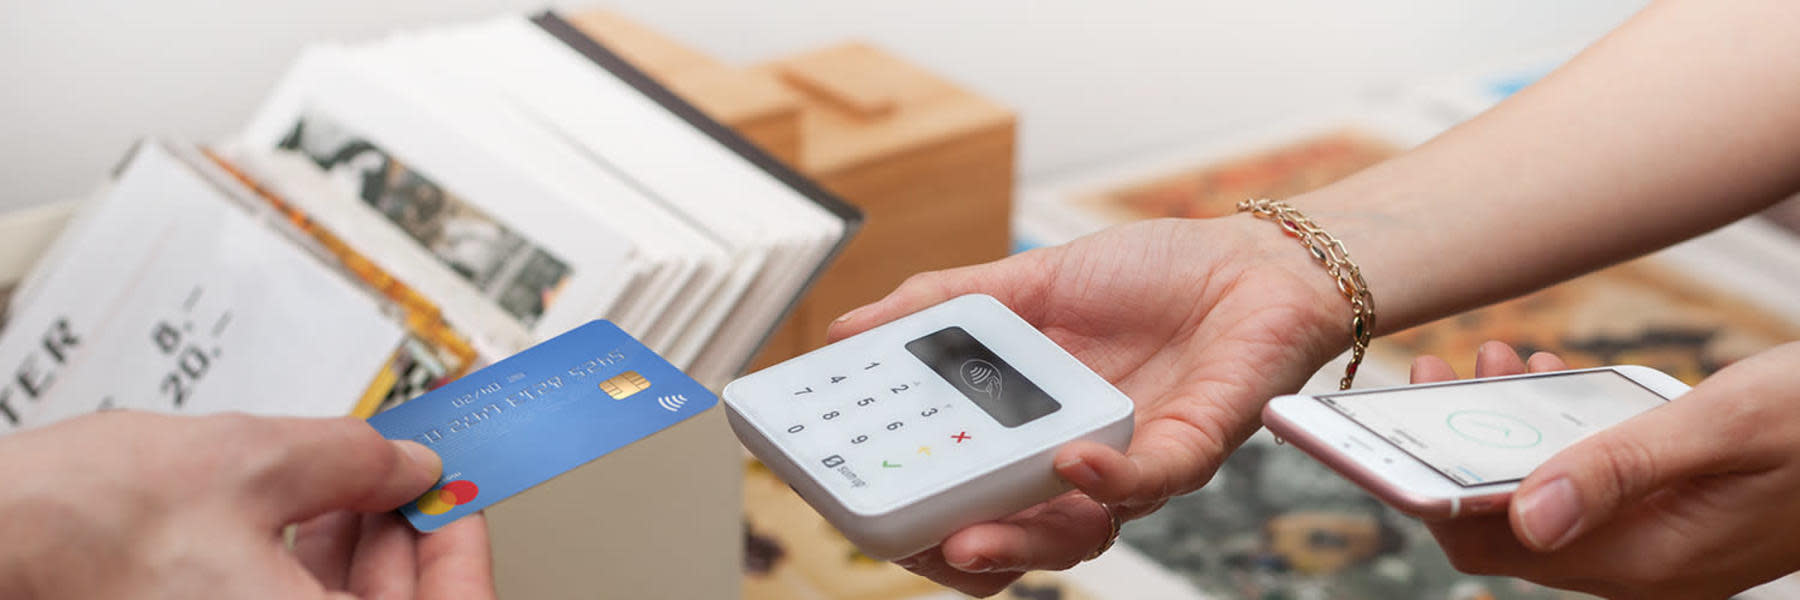 de-at-what-are-nfc-payments